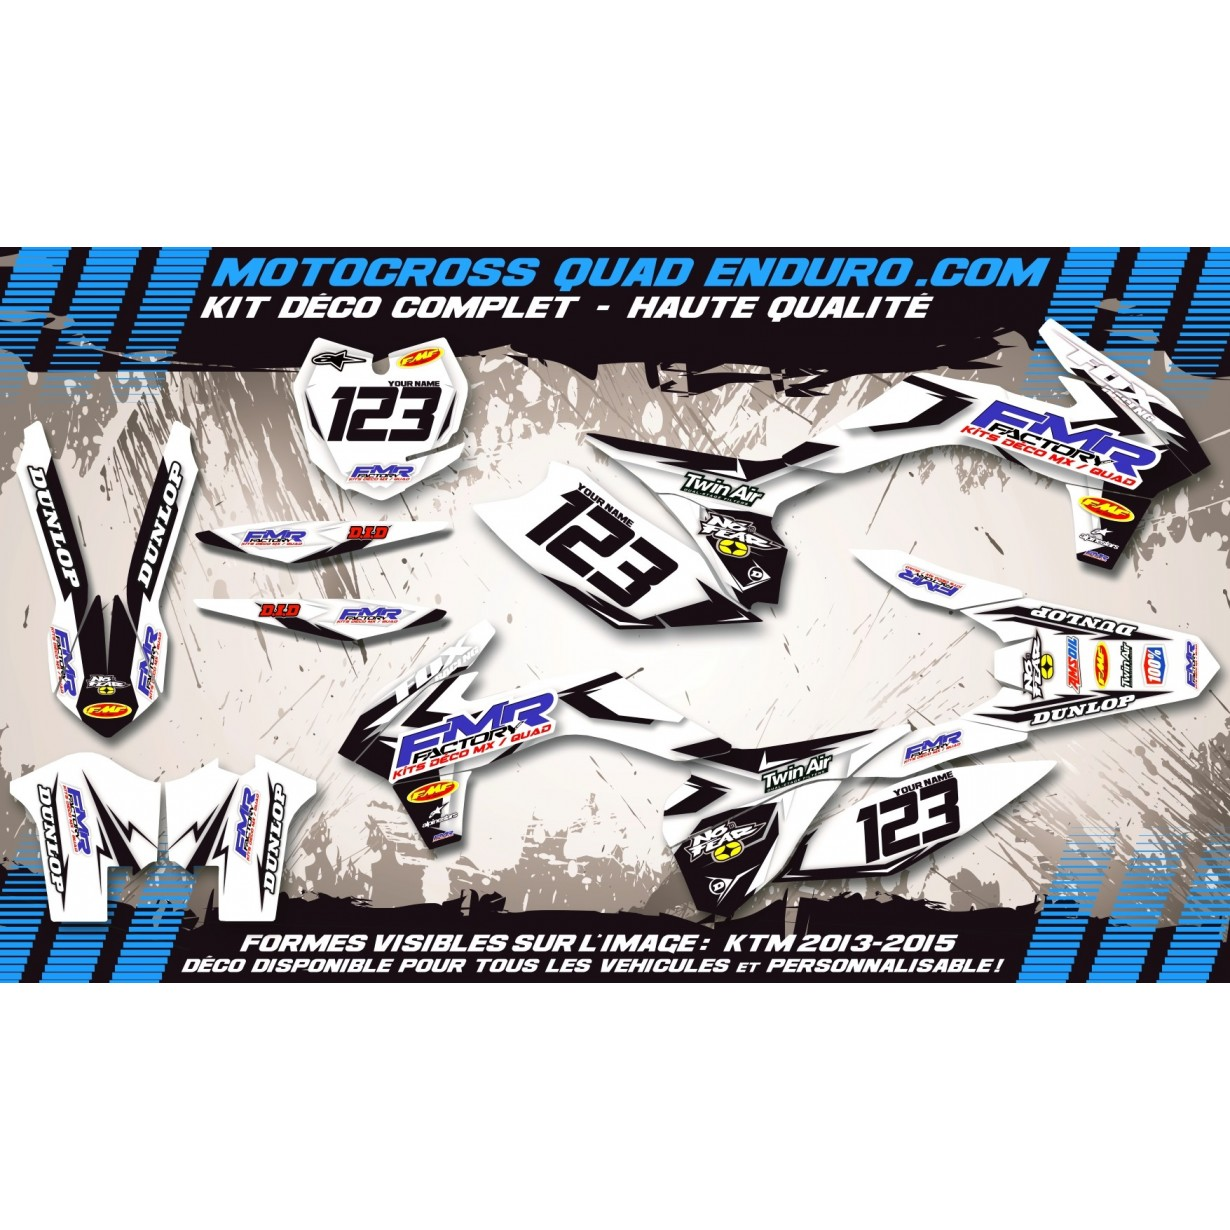 KIT DÉCO Perso 125 CR 98-99 Fmr factory WT Edition MA13WT